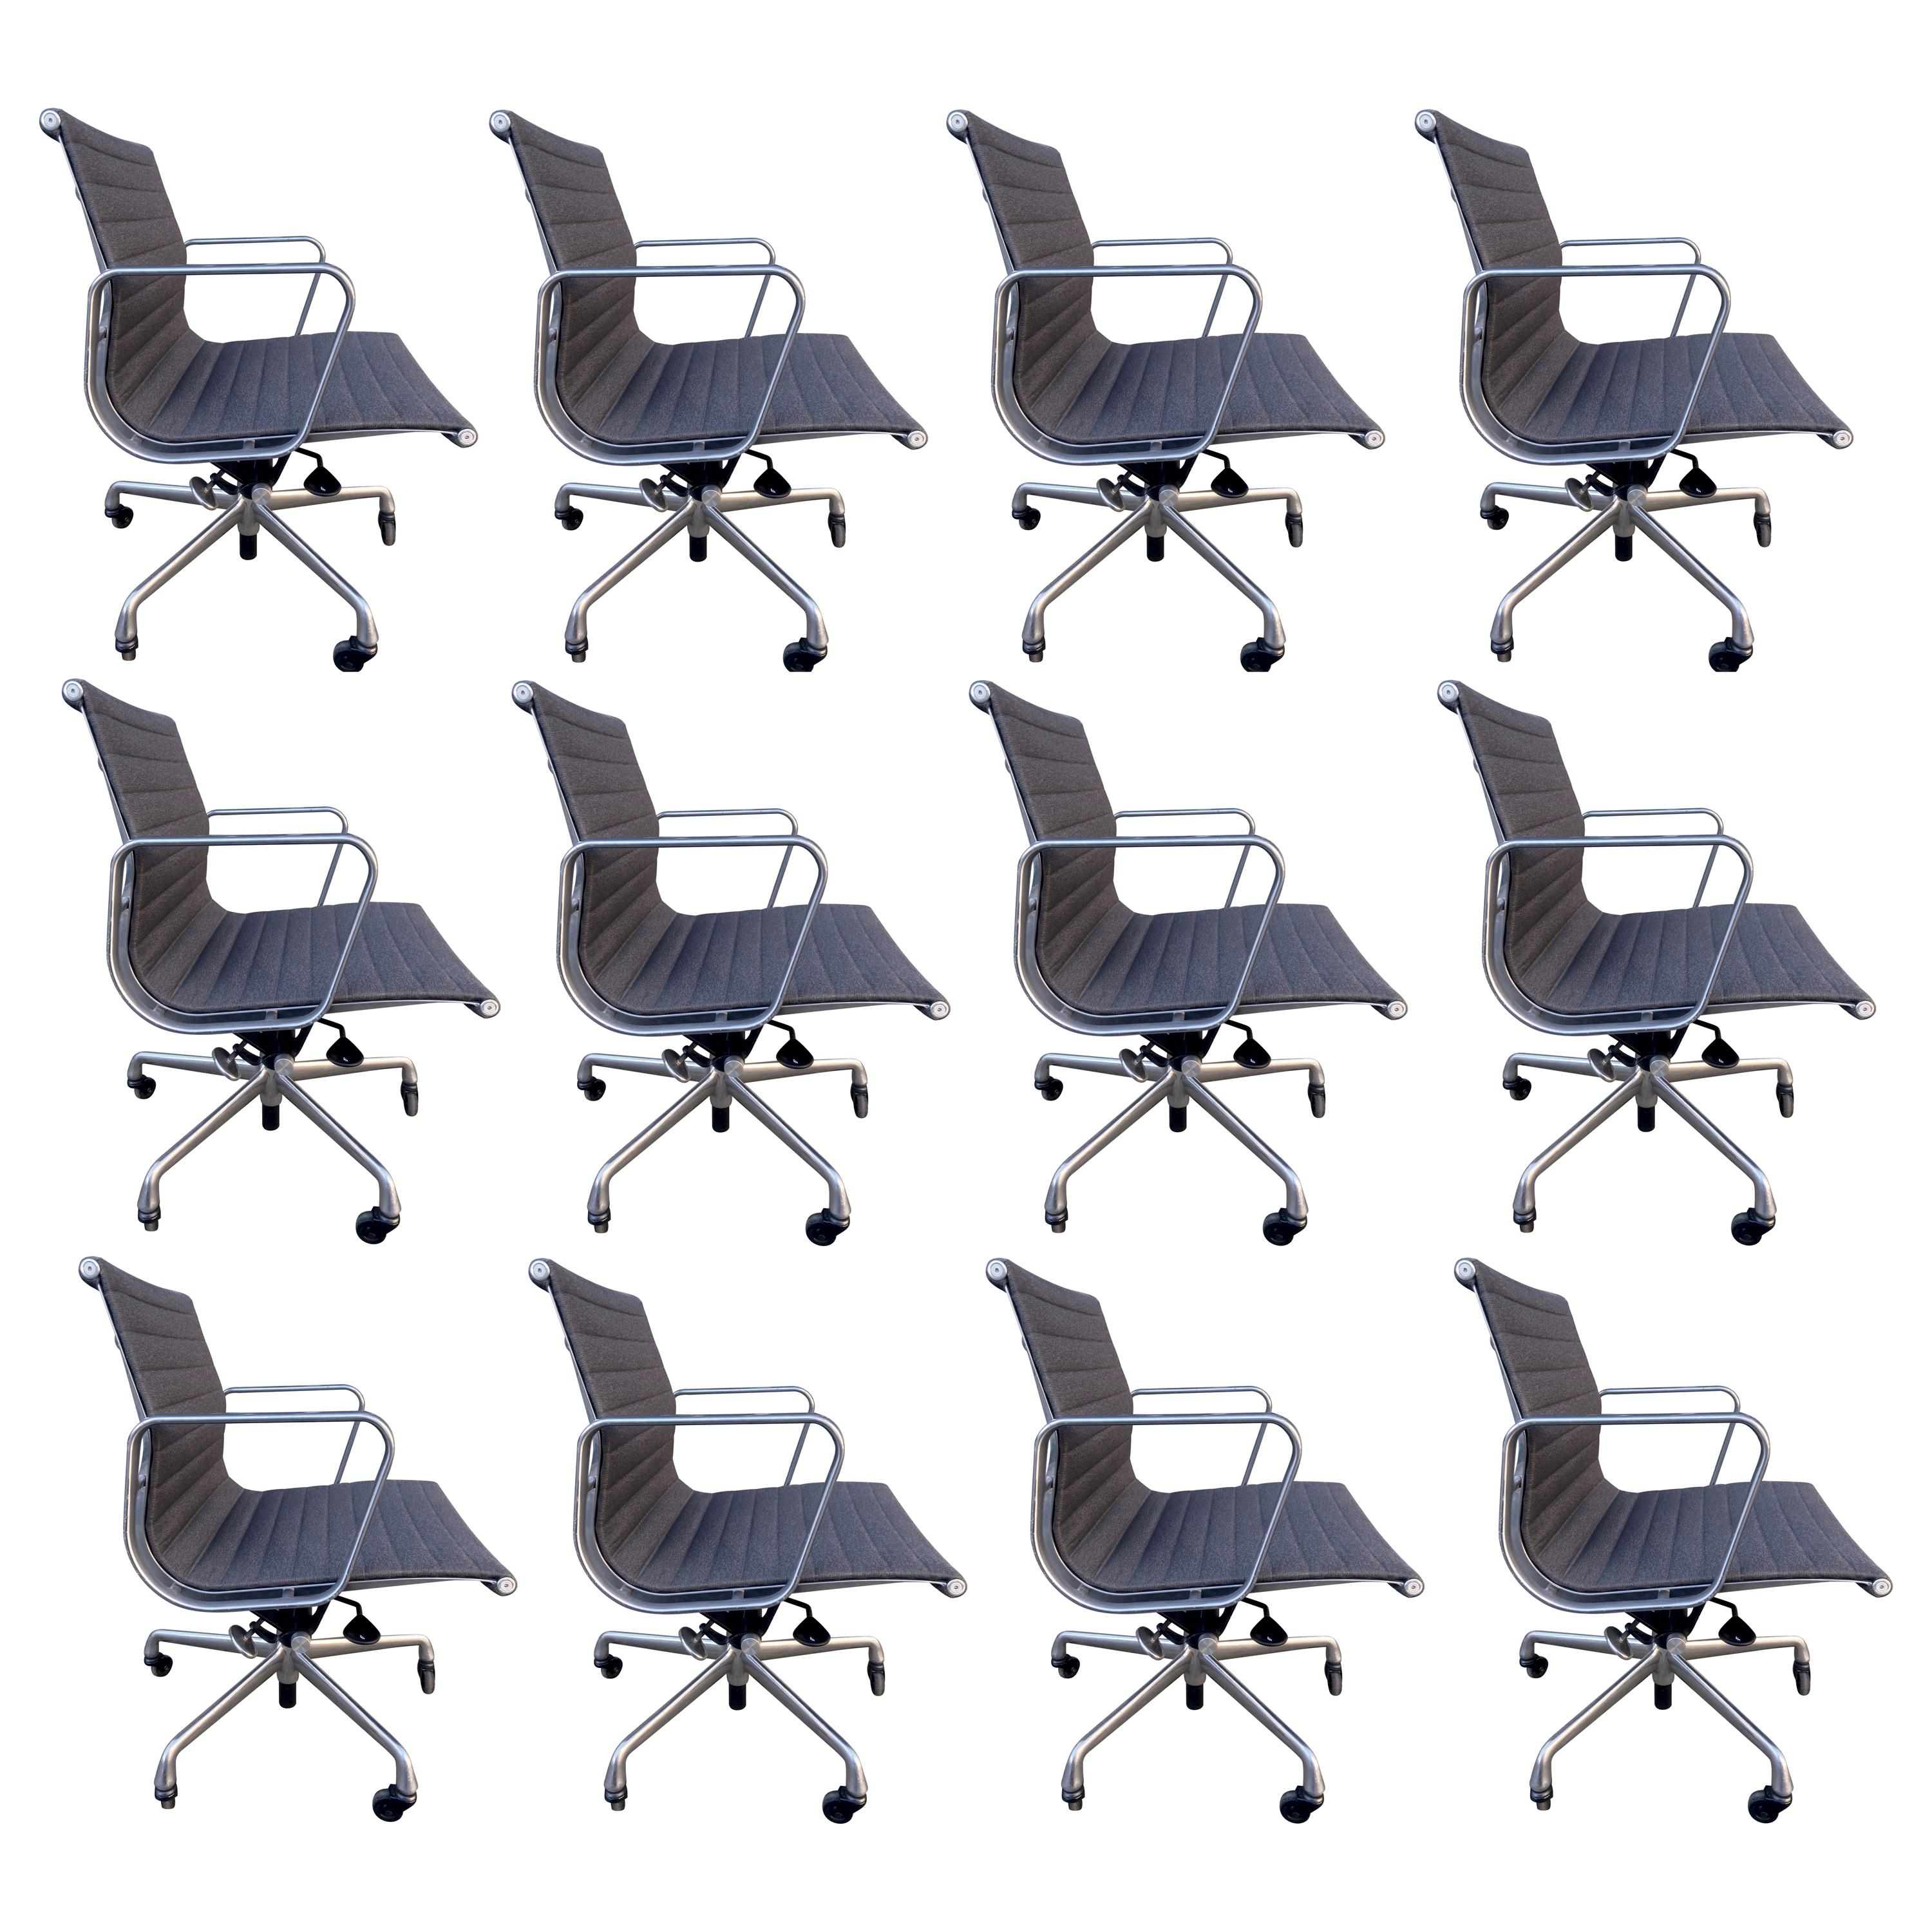 Midcentury Eames Aluminum Group Chairs in Charcoal Gray Fabric